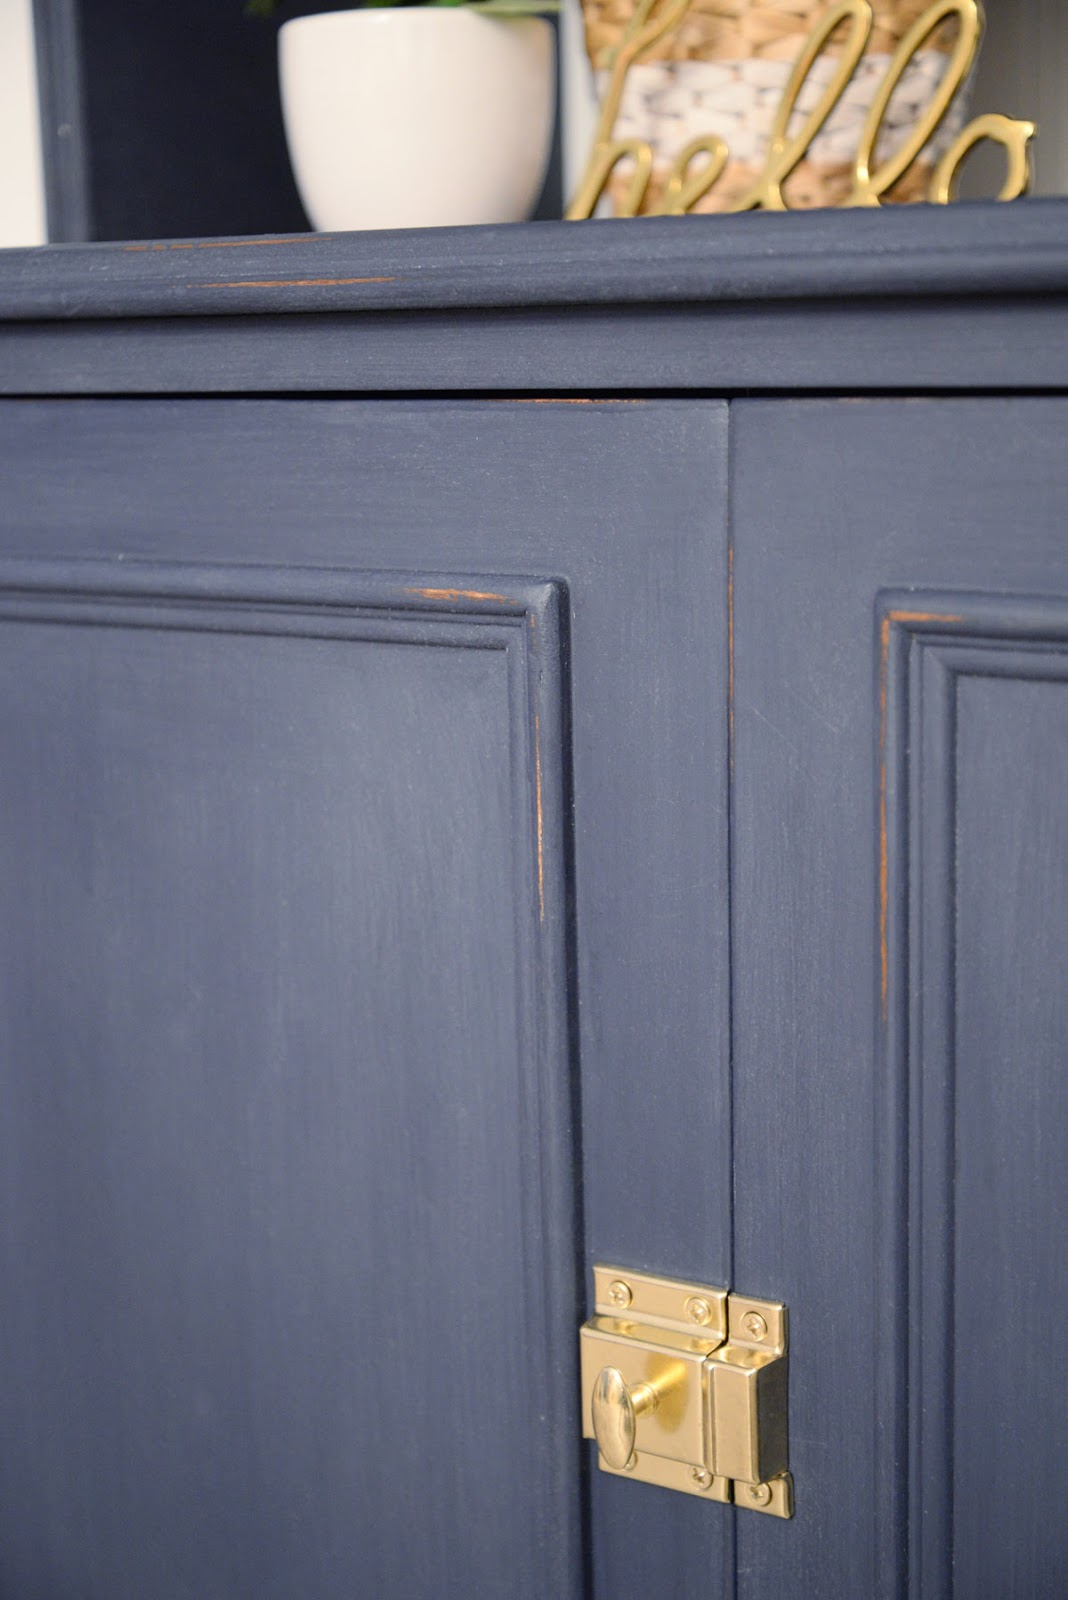 Navy chalk style FAT Paint with brass catch latch | Ramblingrenovators.ca